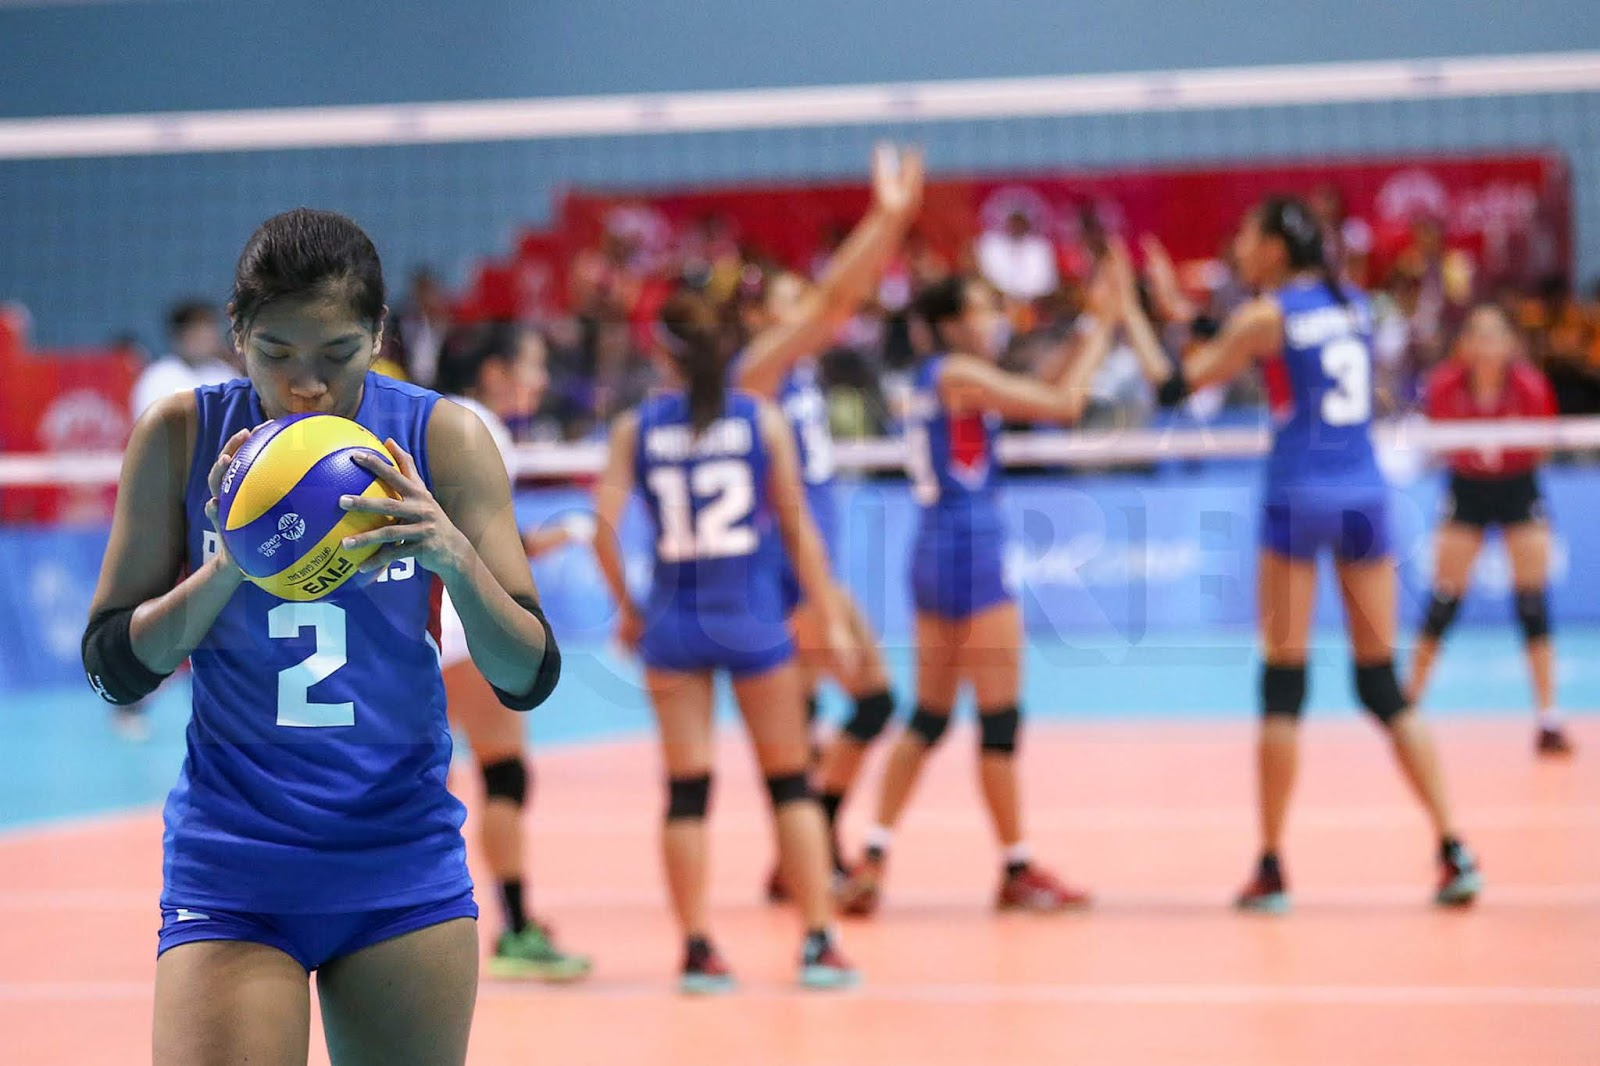 Philippines bows to Thailand in the 2018 Asian Games Women's Volleyball